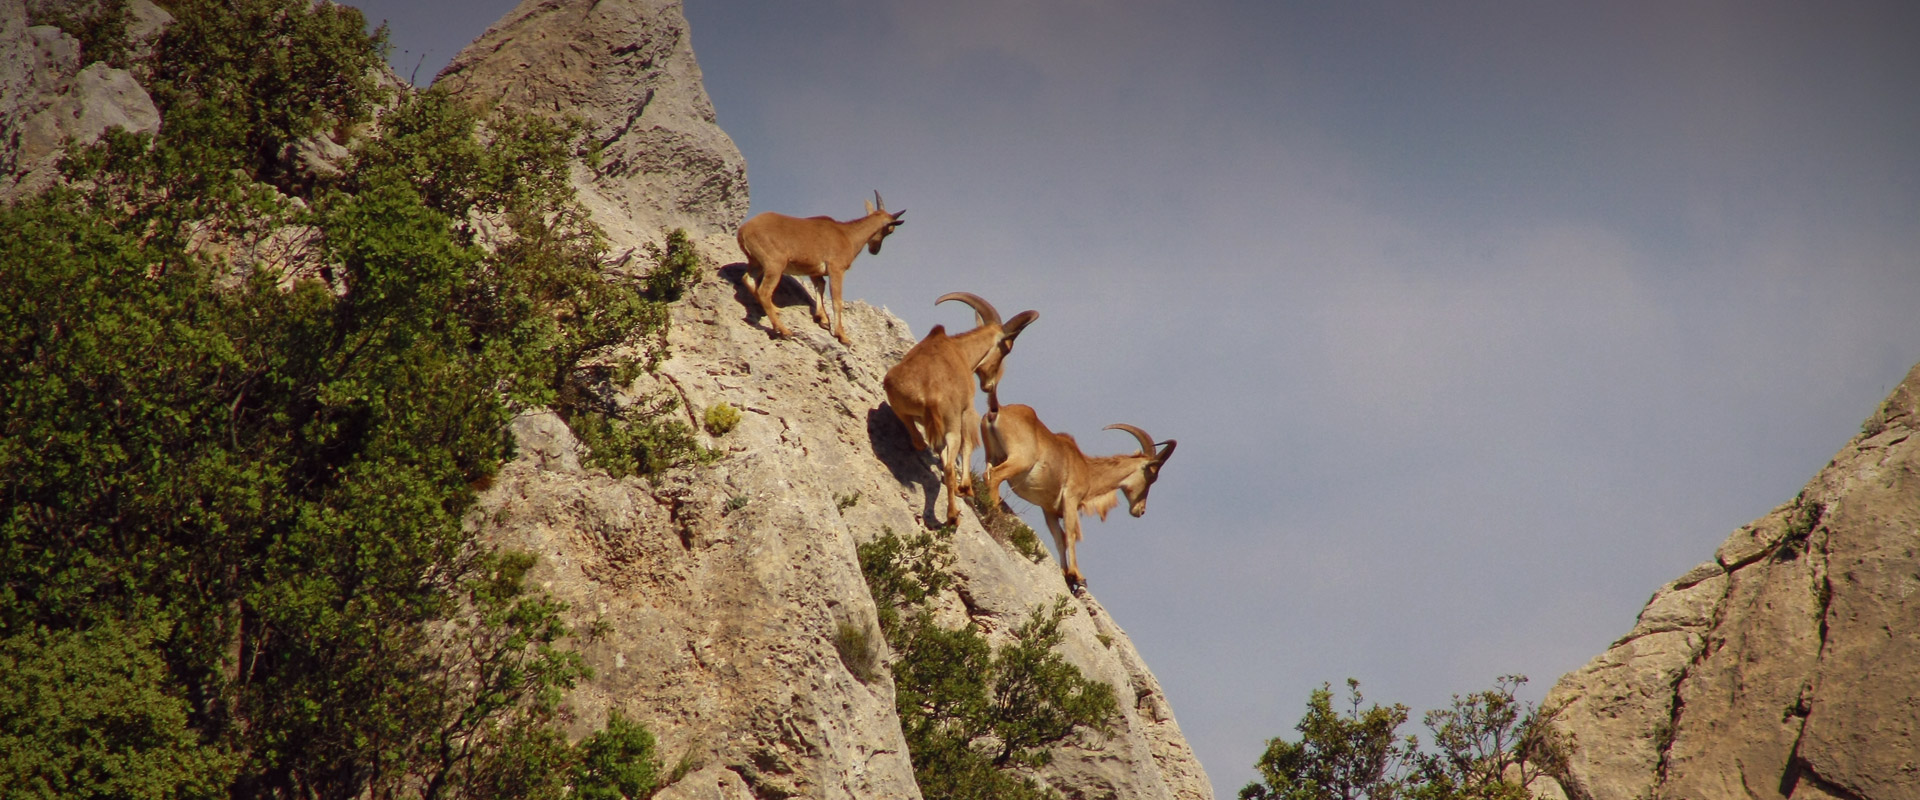 Barbary sheep on the mountain of Puig Campana